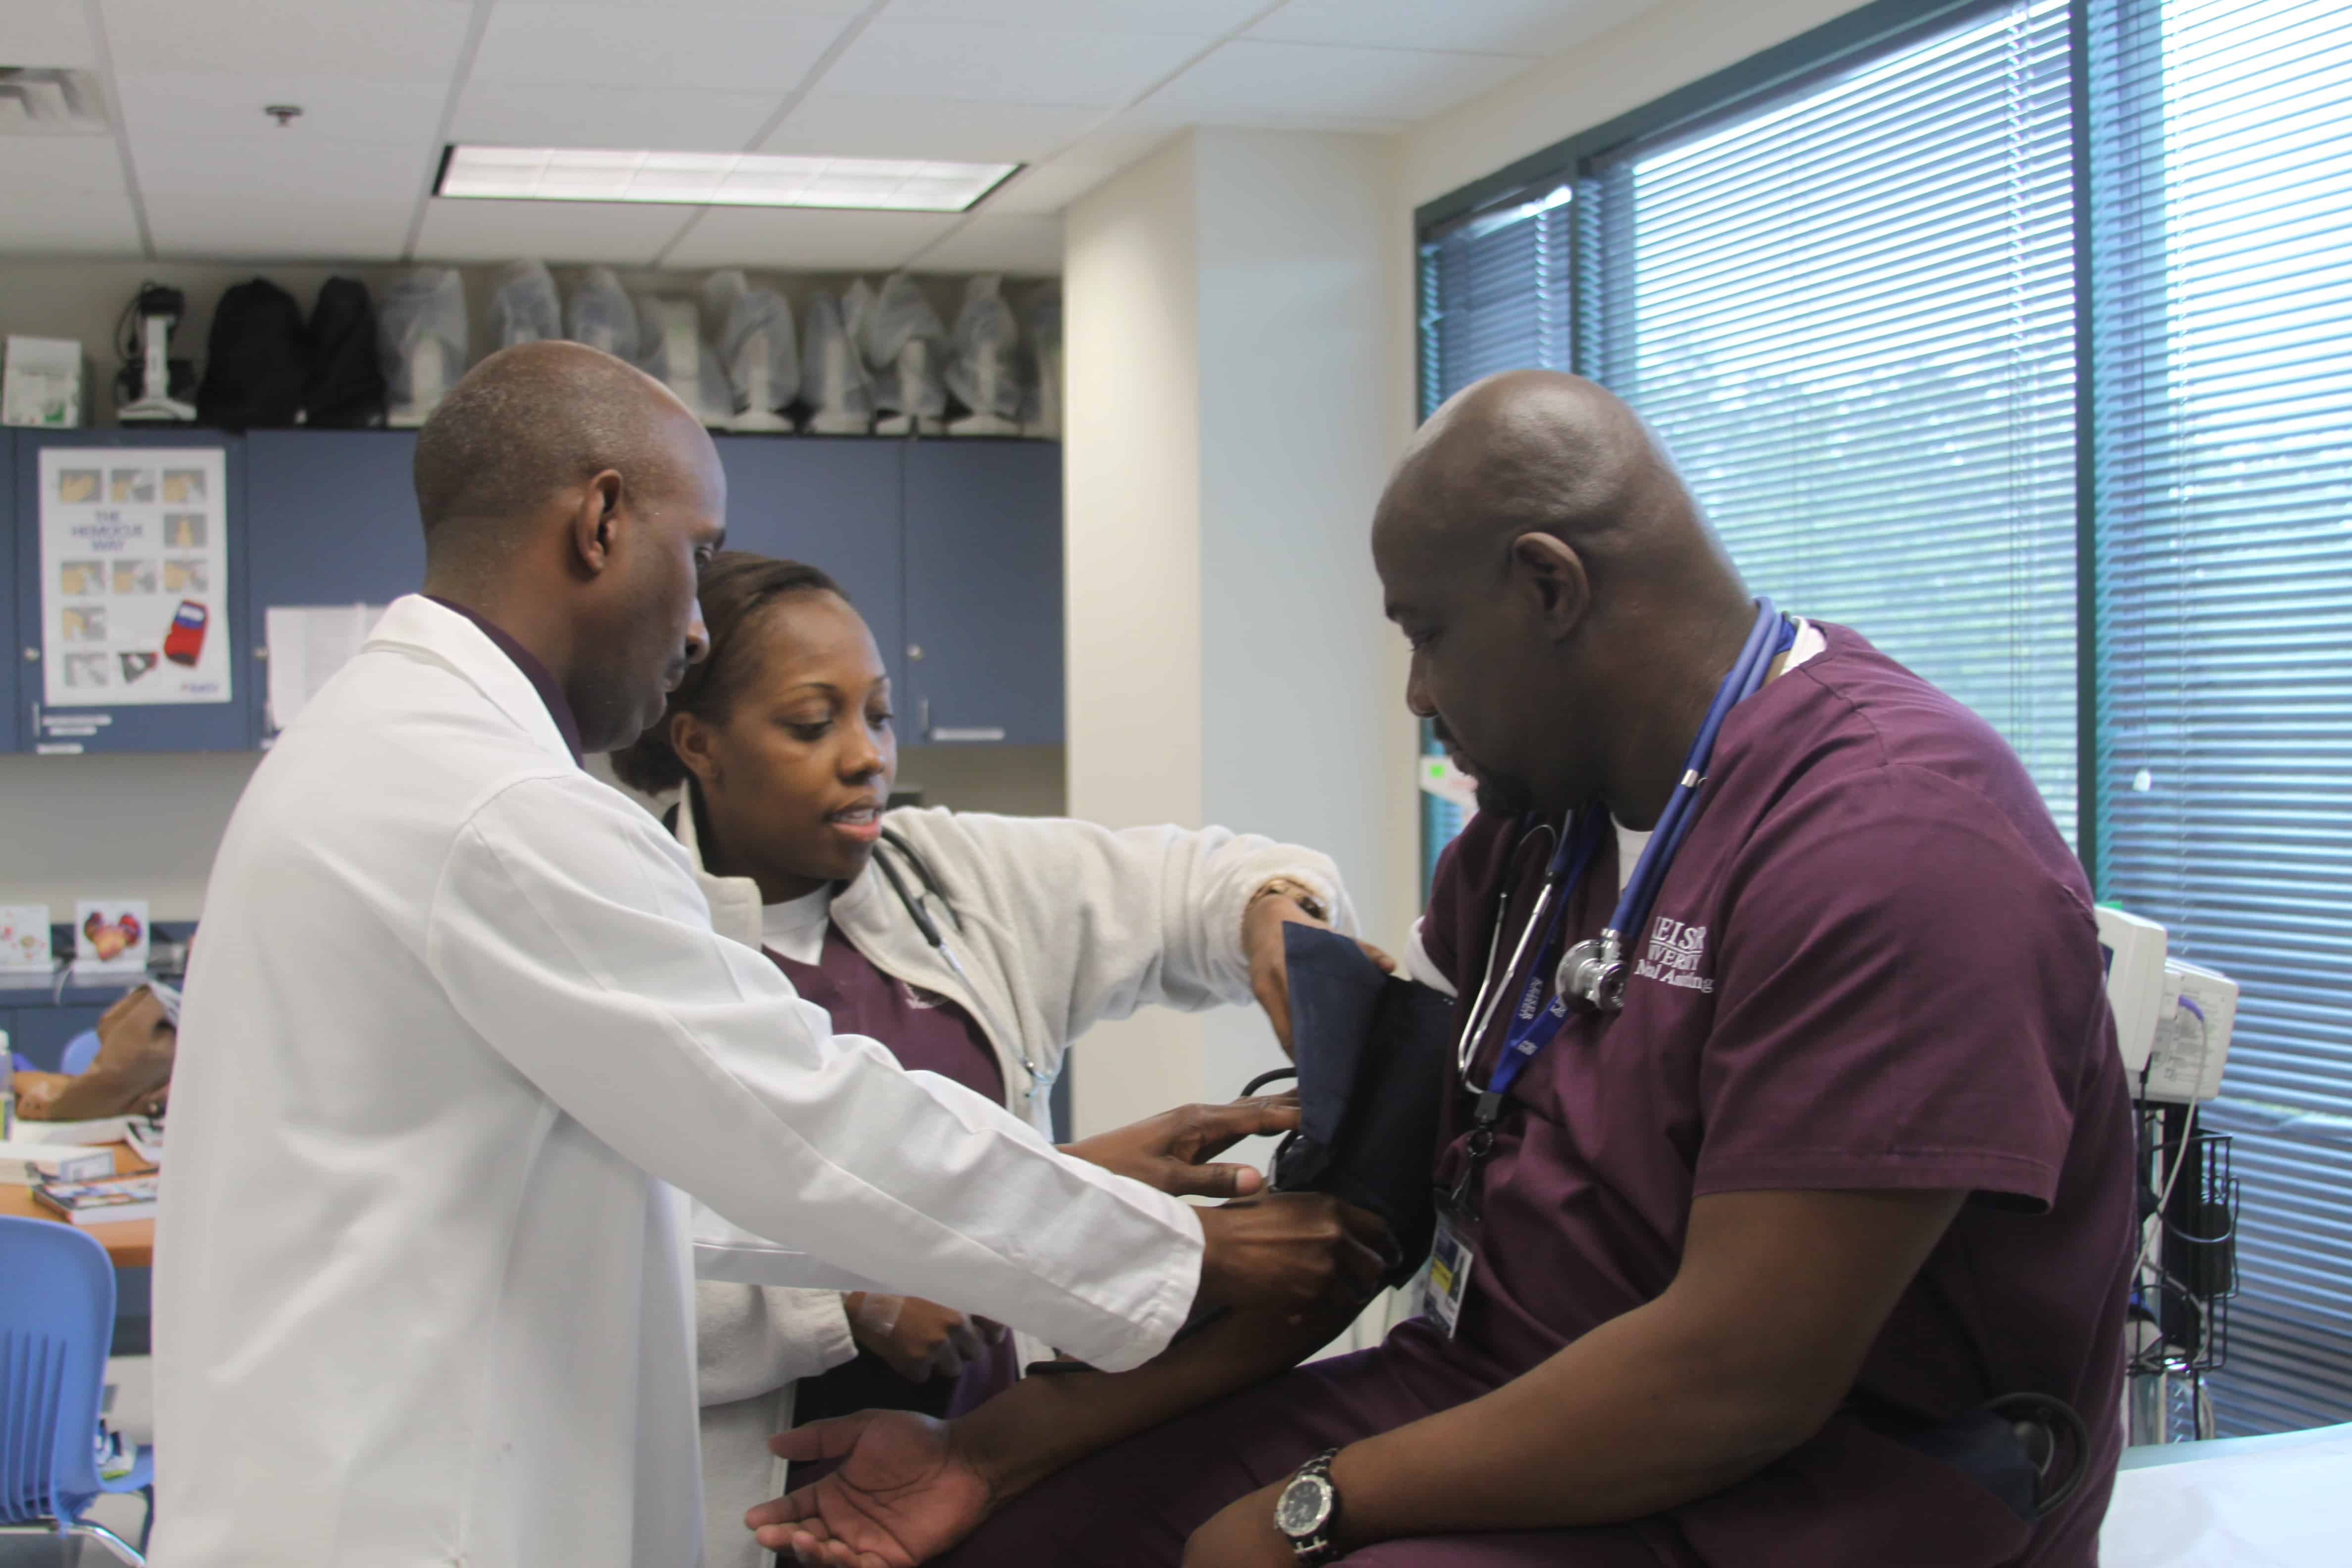 Medical Assistant Students in Jacksonville Learn New Skills